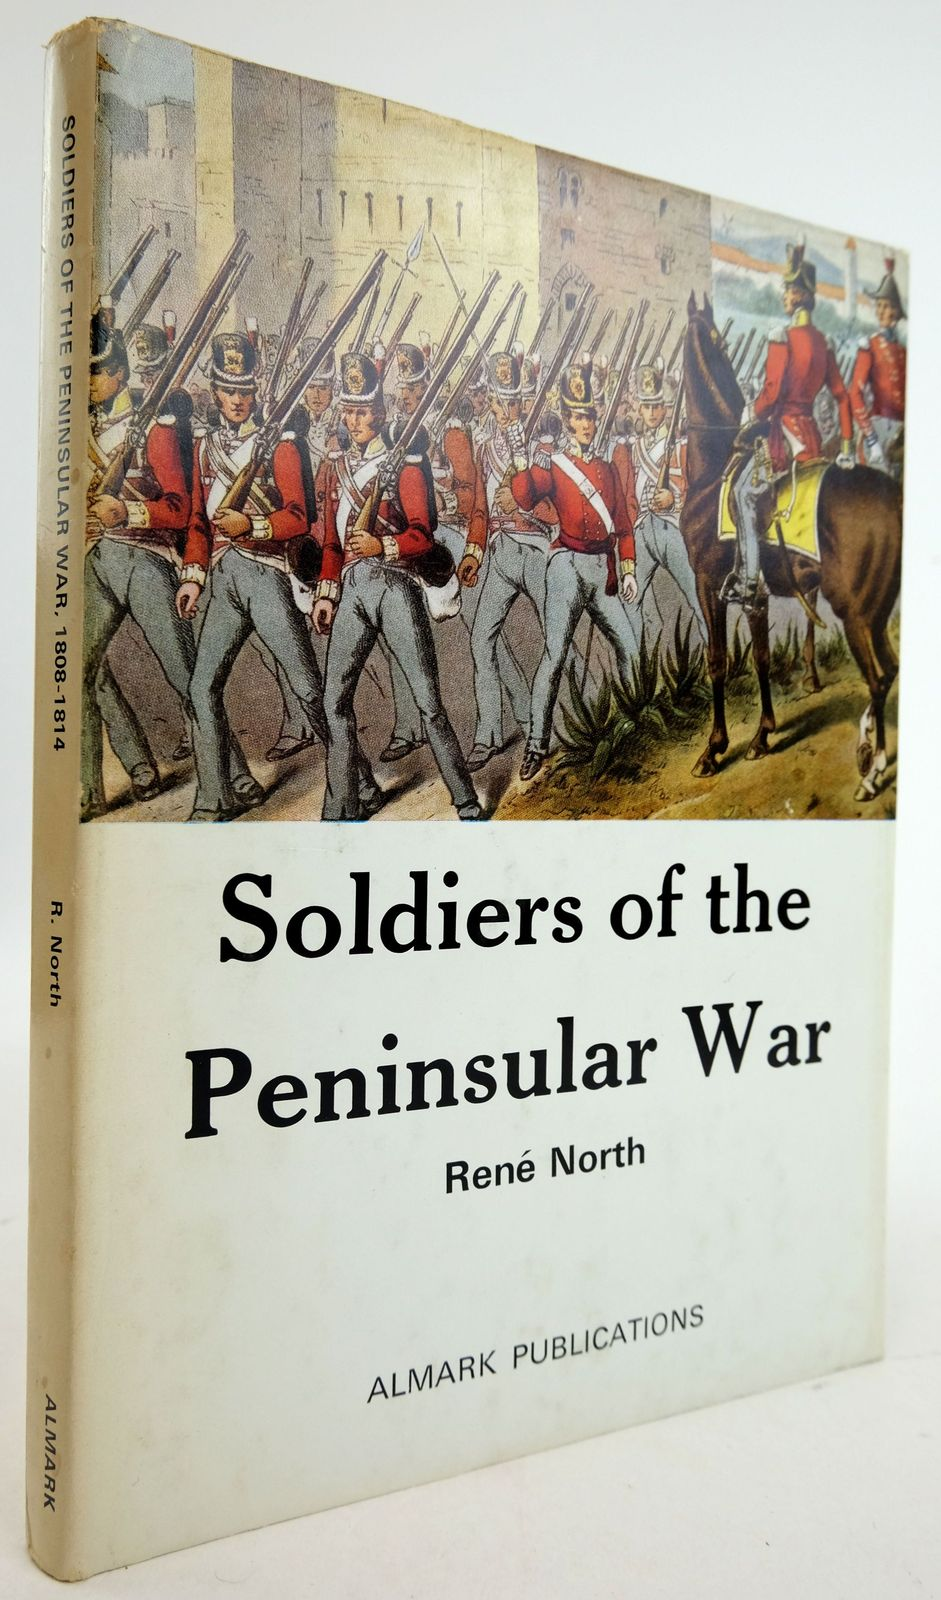 Photo of SOLDIERS OF THE PENINSULAR WAR 1808-1814 written by North, Rene published by Almark Publishing Co. Ltd. (STOCK CODE: 1819736)  for sale by Stella & Rose's Books